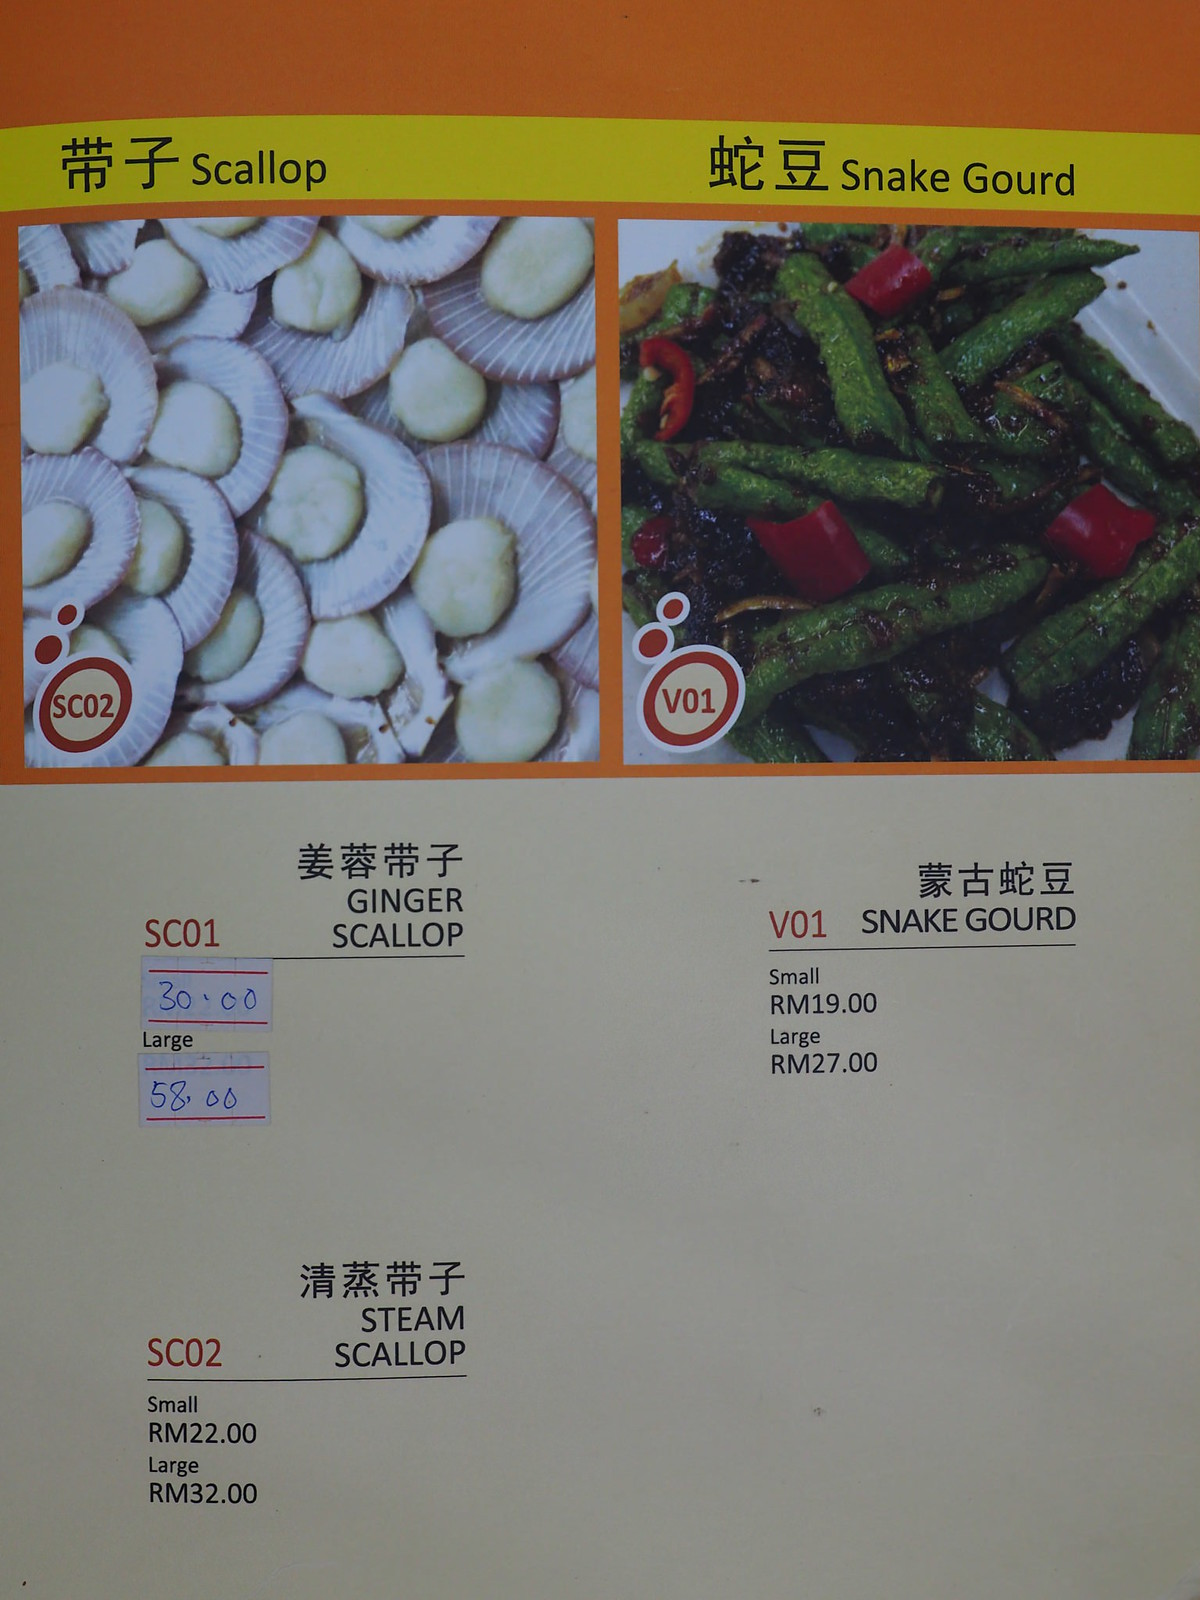 Scallop and snake gourd